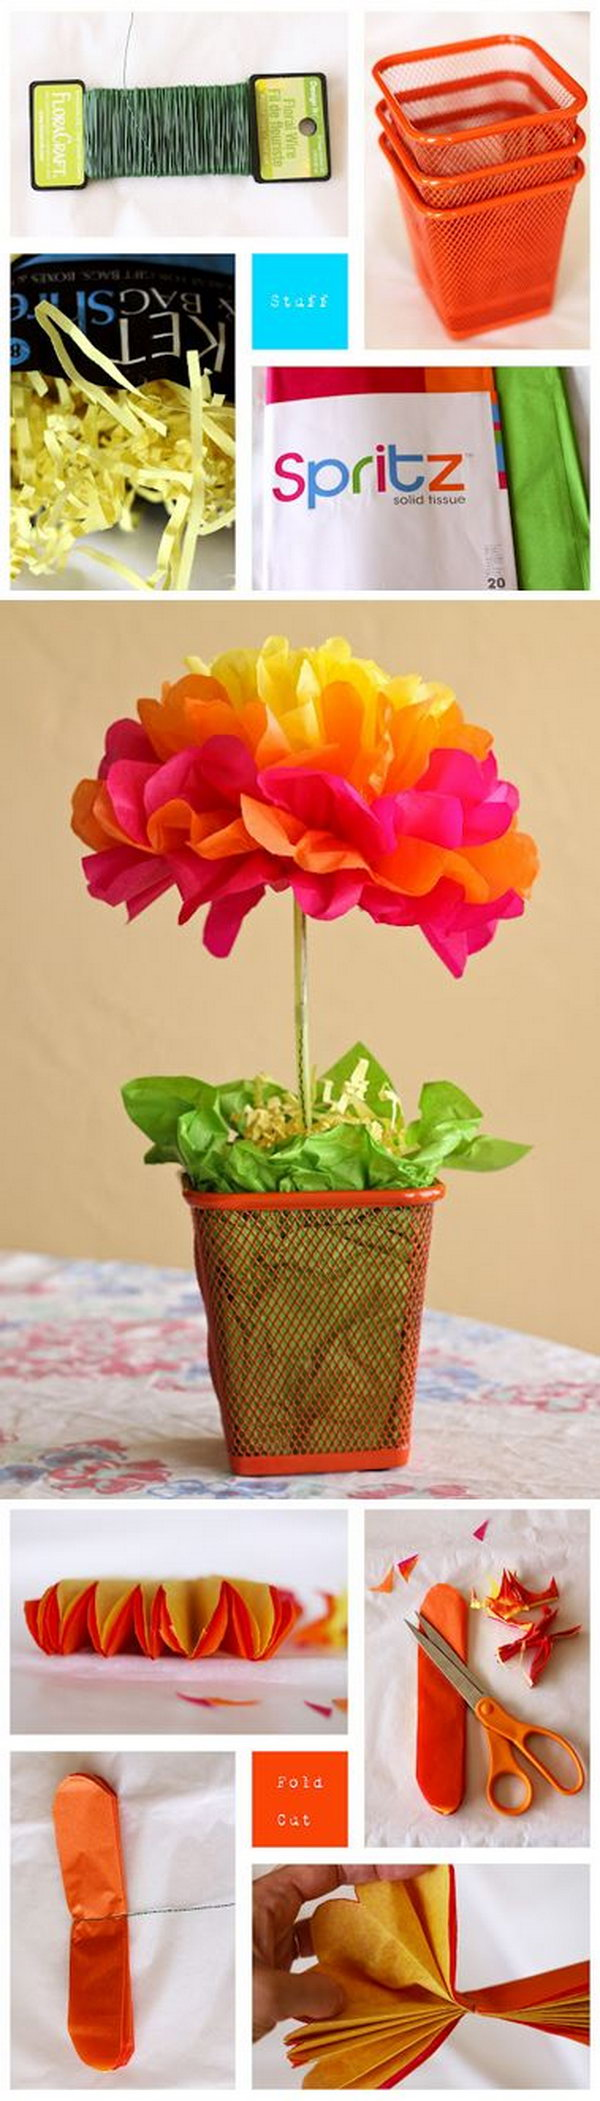 Tissue Paper Flower Centerpieces. Super easy, super inexpensive festive table centerpieces. Get started to make some for your next party with the tutorial